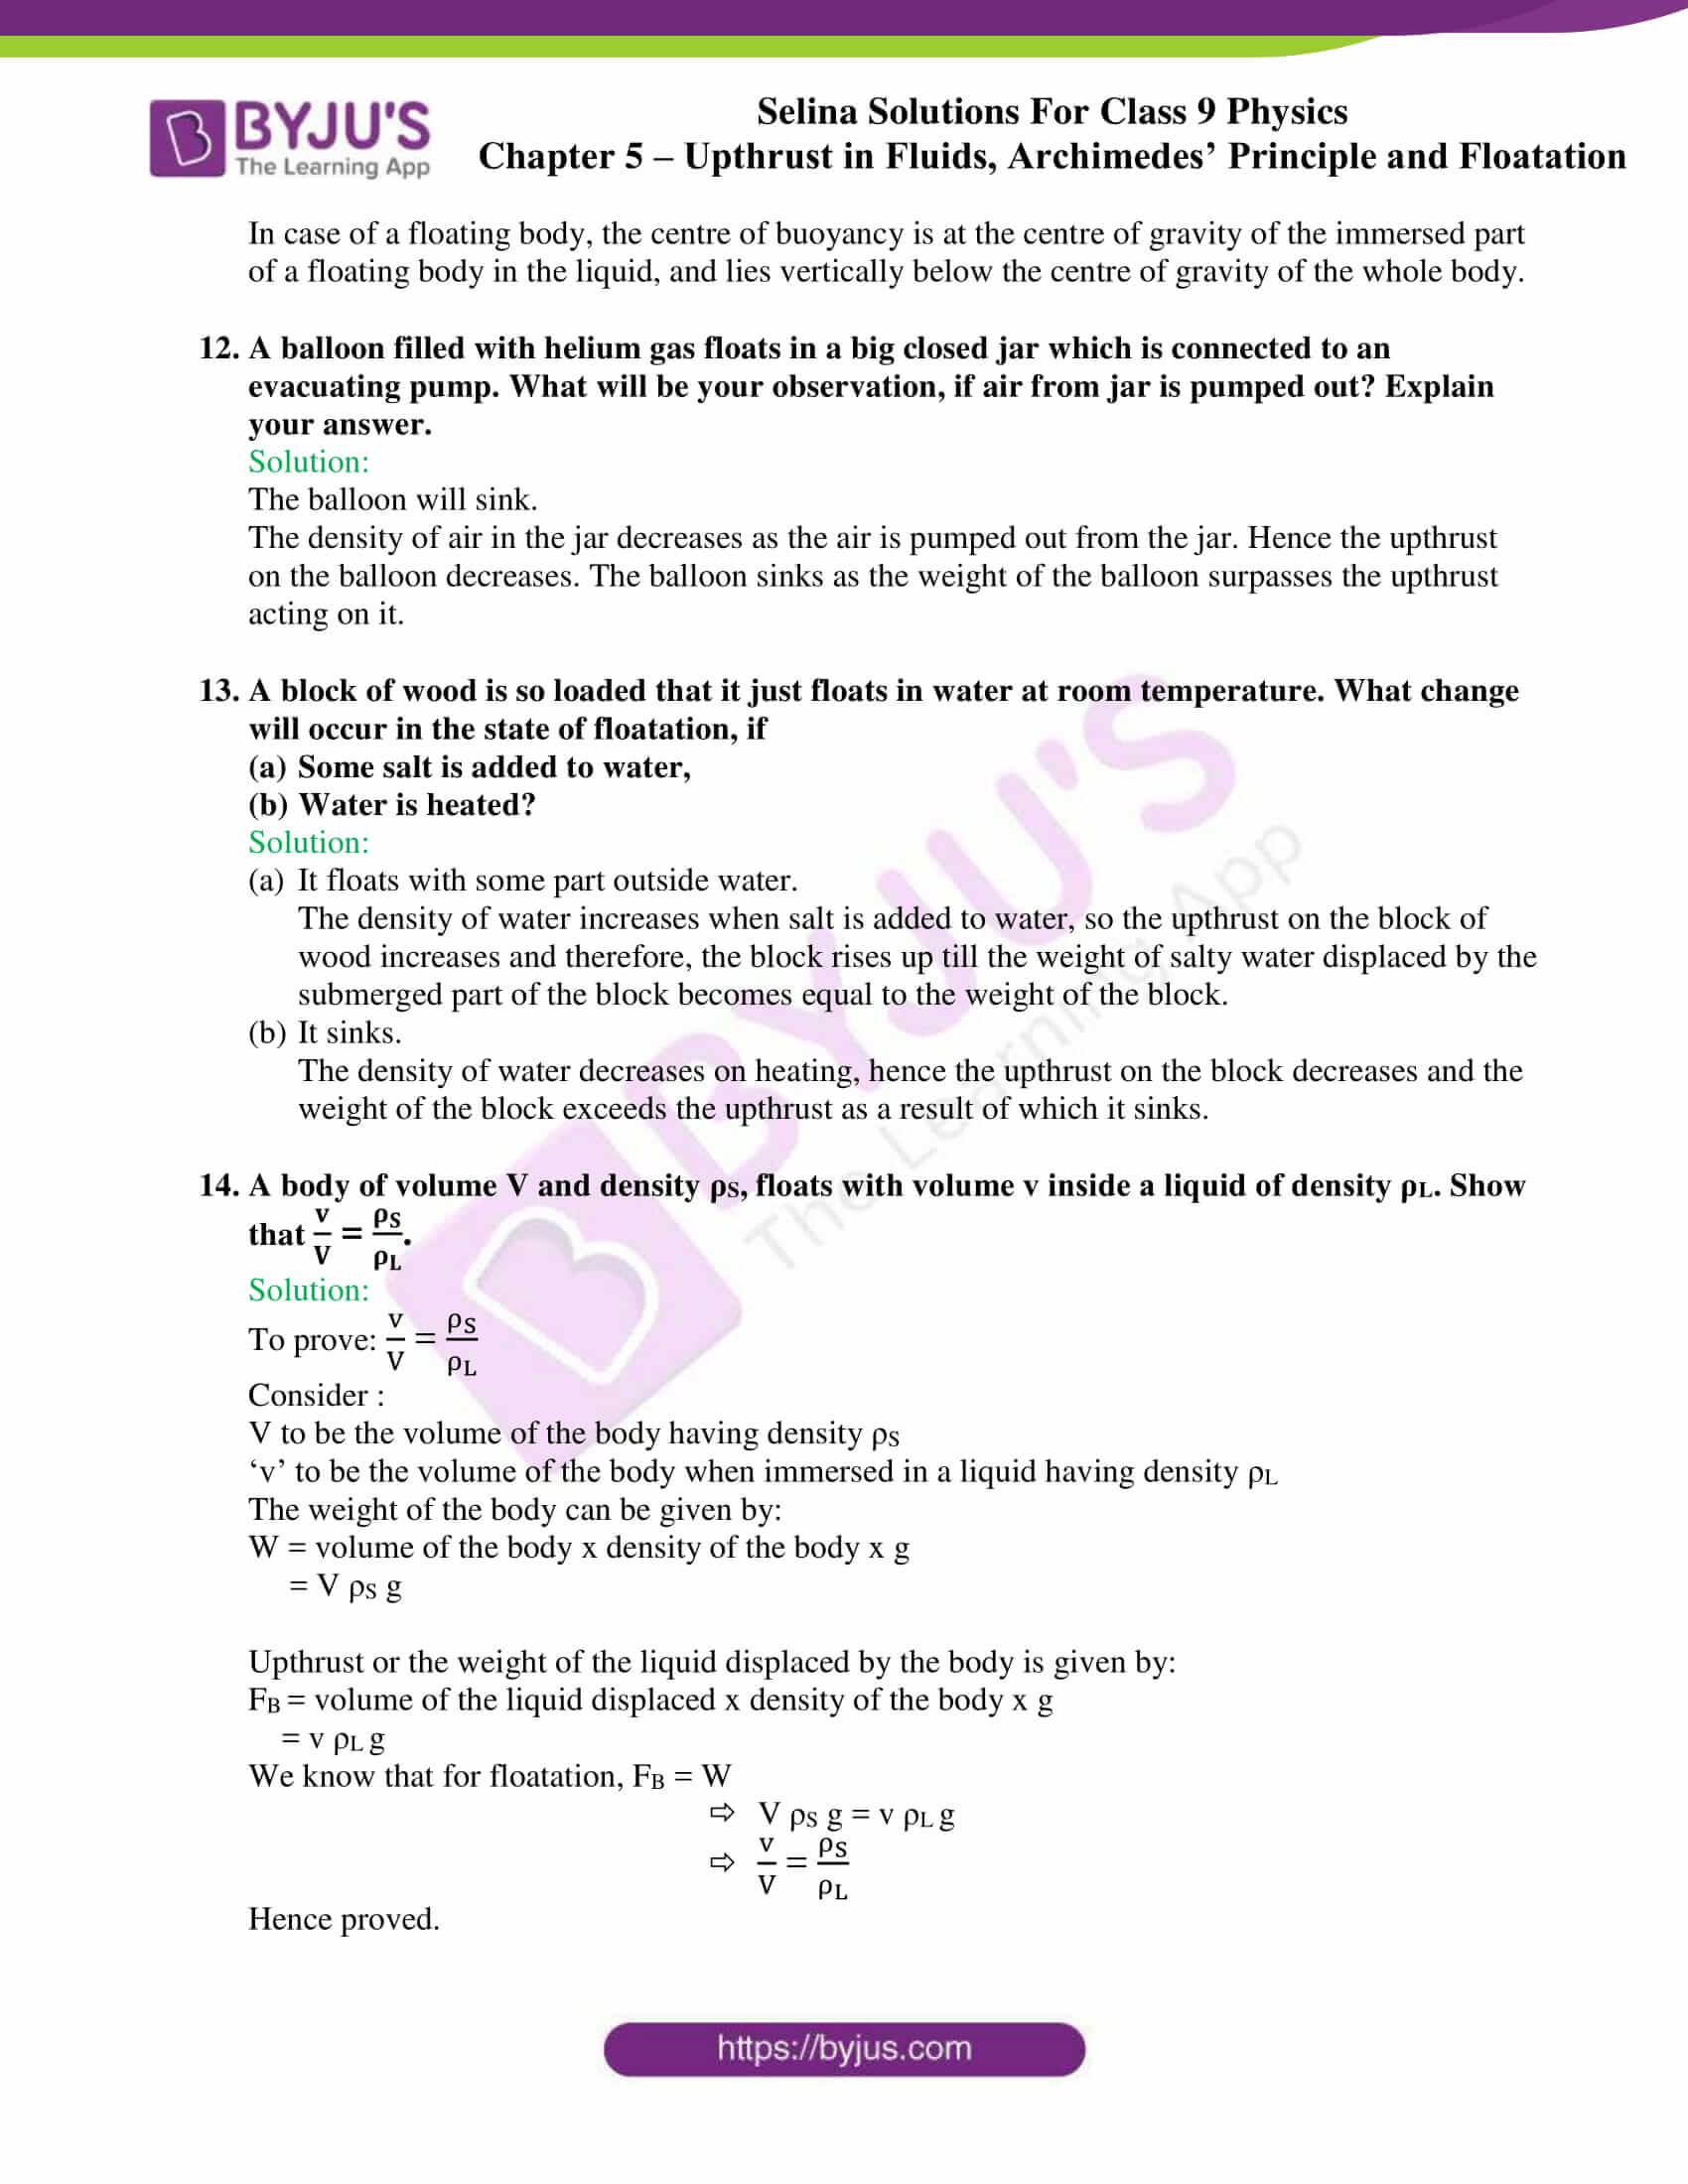 selina solutions class 9 physics chapter 5 part 26